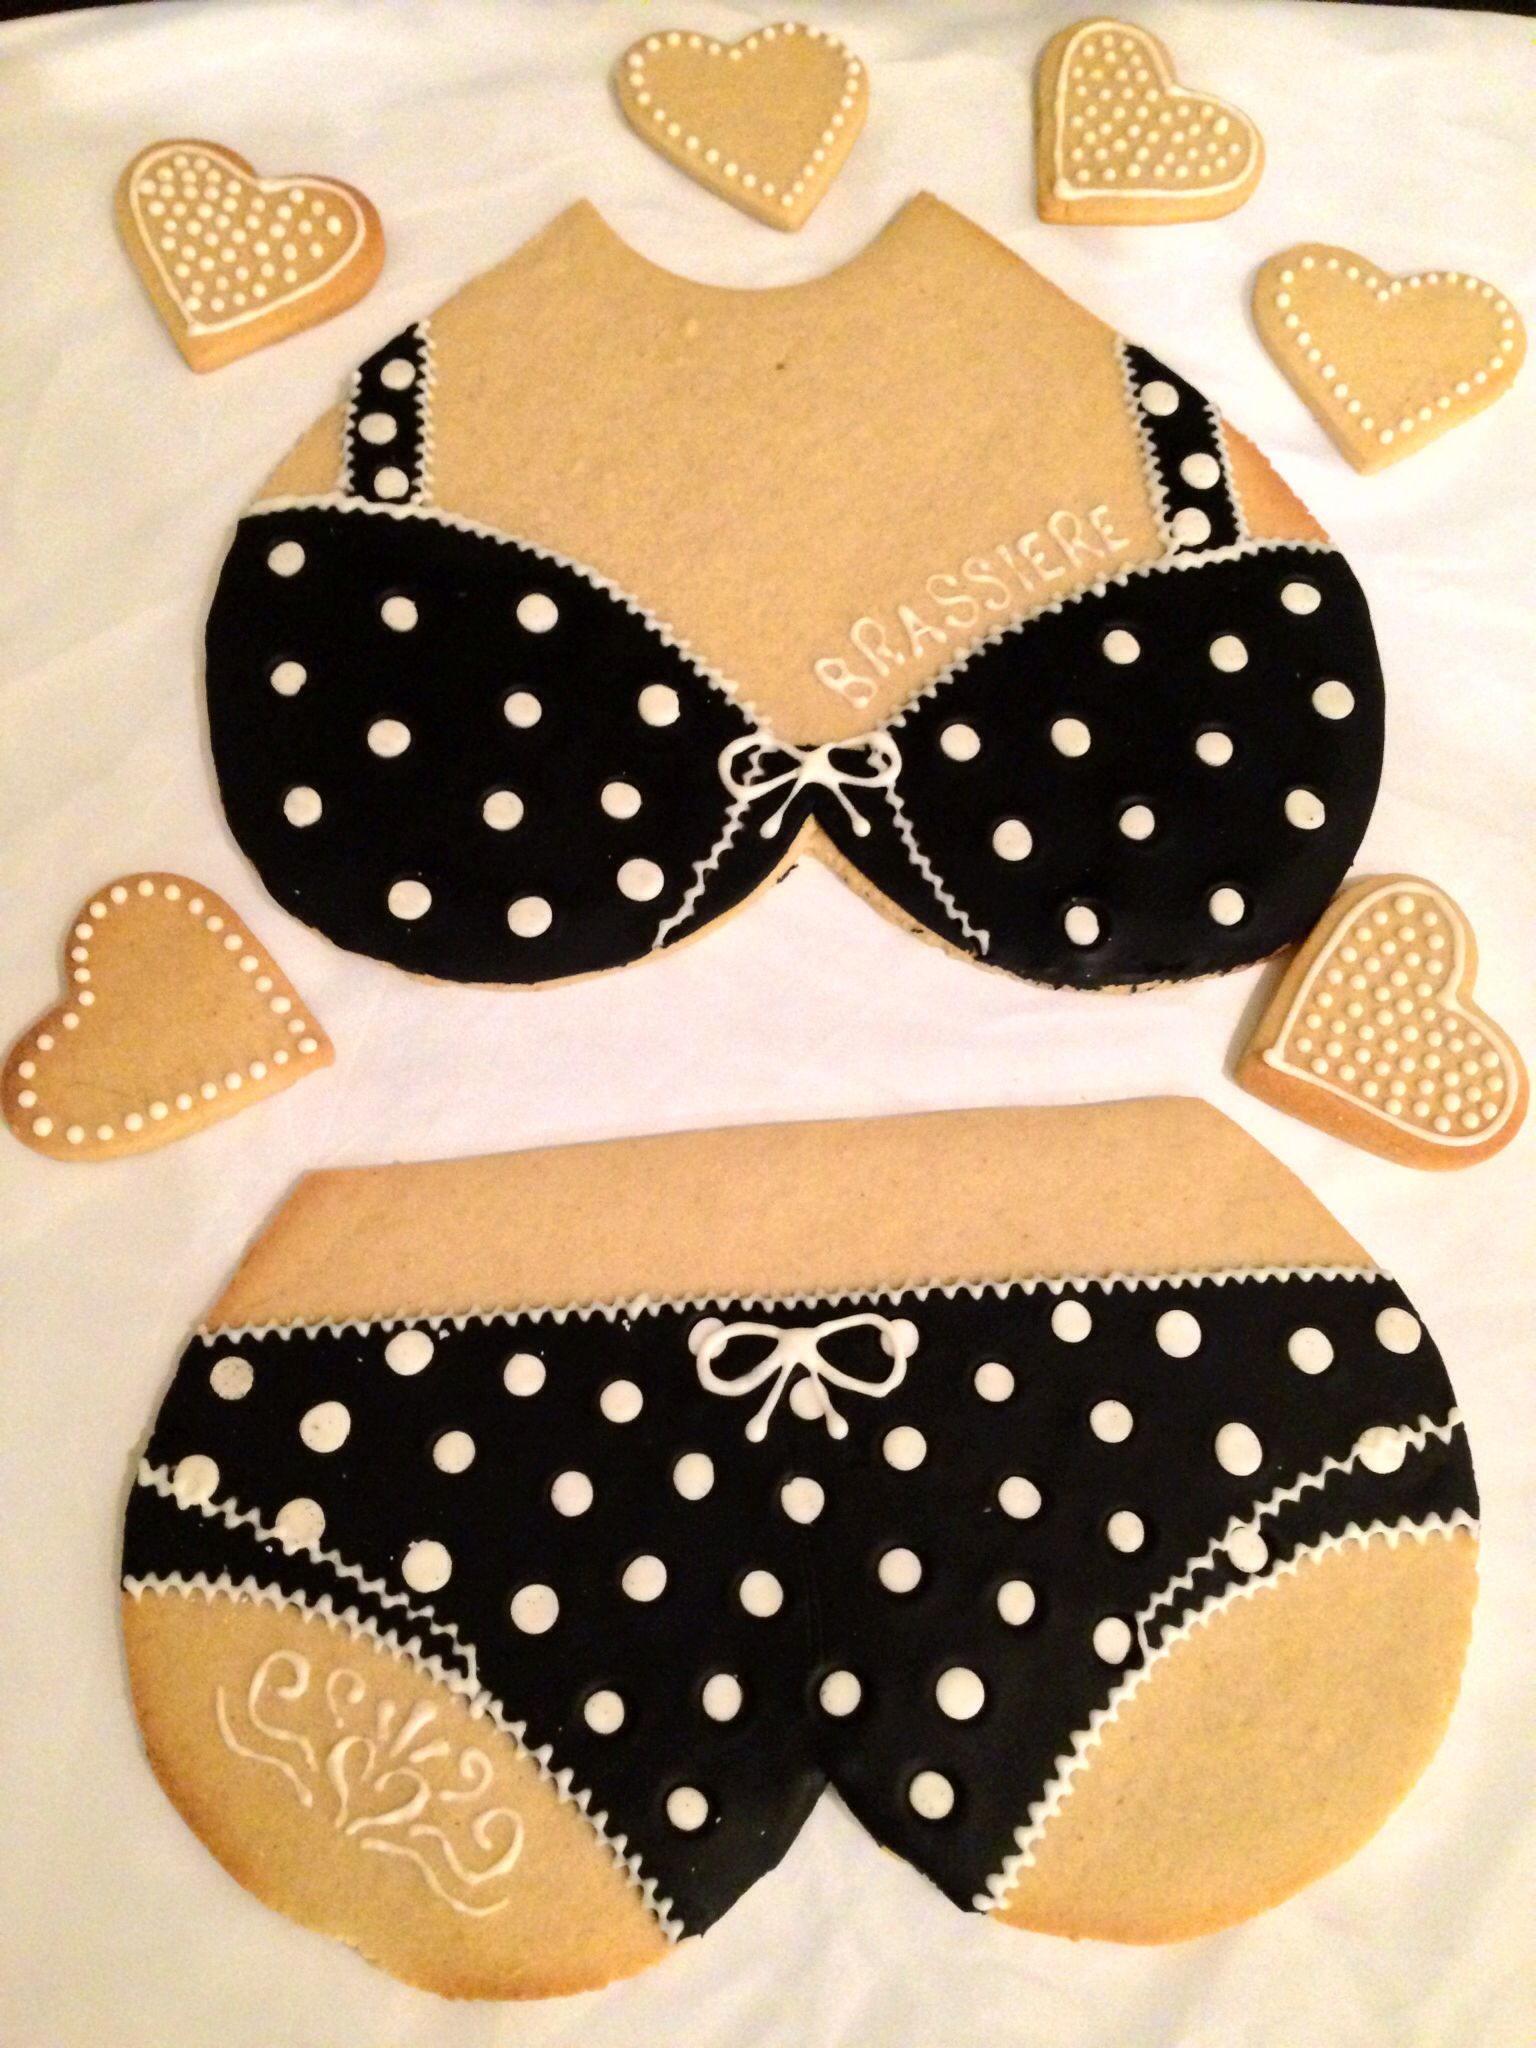 Large lingerie biscuits/cookies.